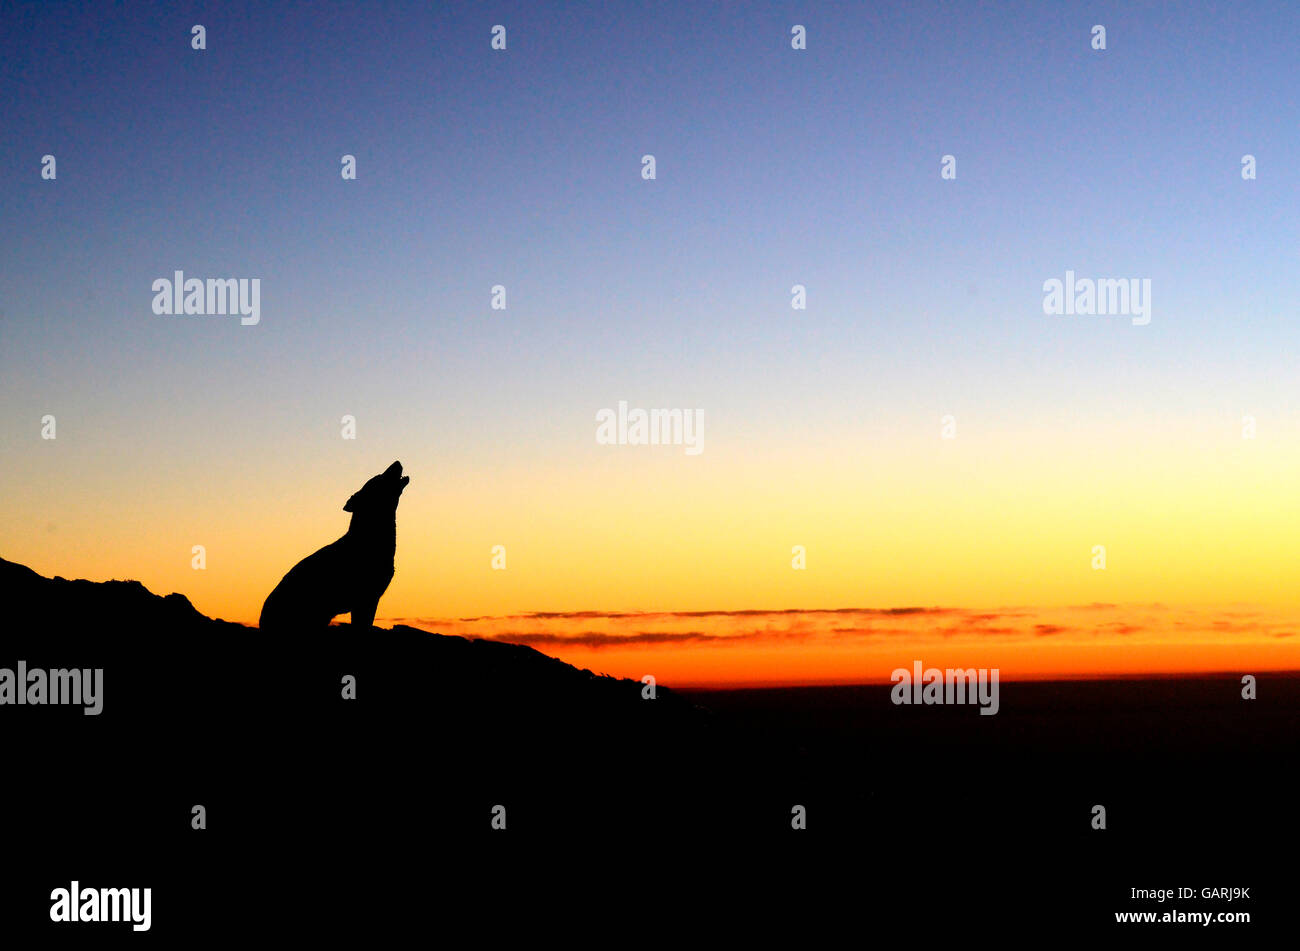 The last howl. A dog howls as the sun sets on a cold day in Triund, Himachal Pradesh, India - Stock Image